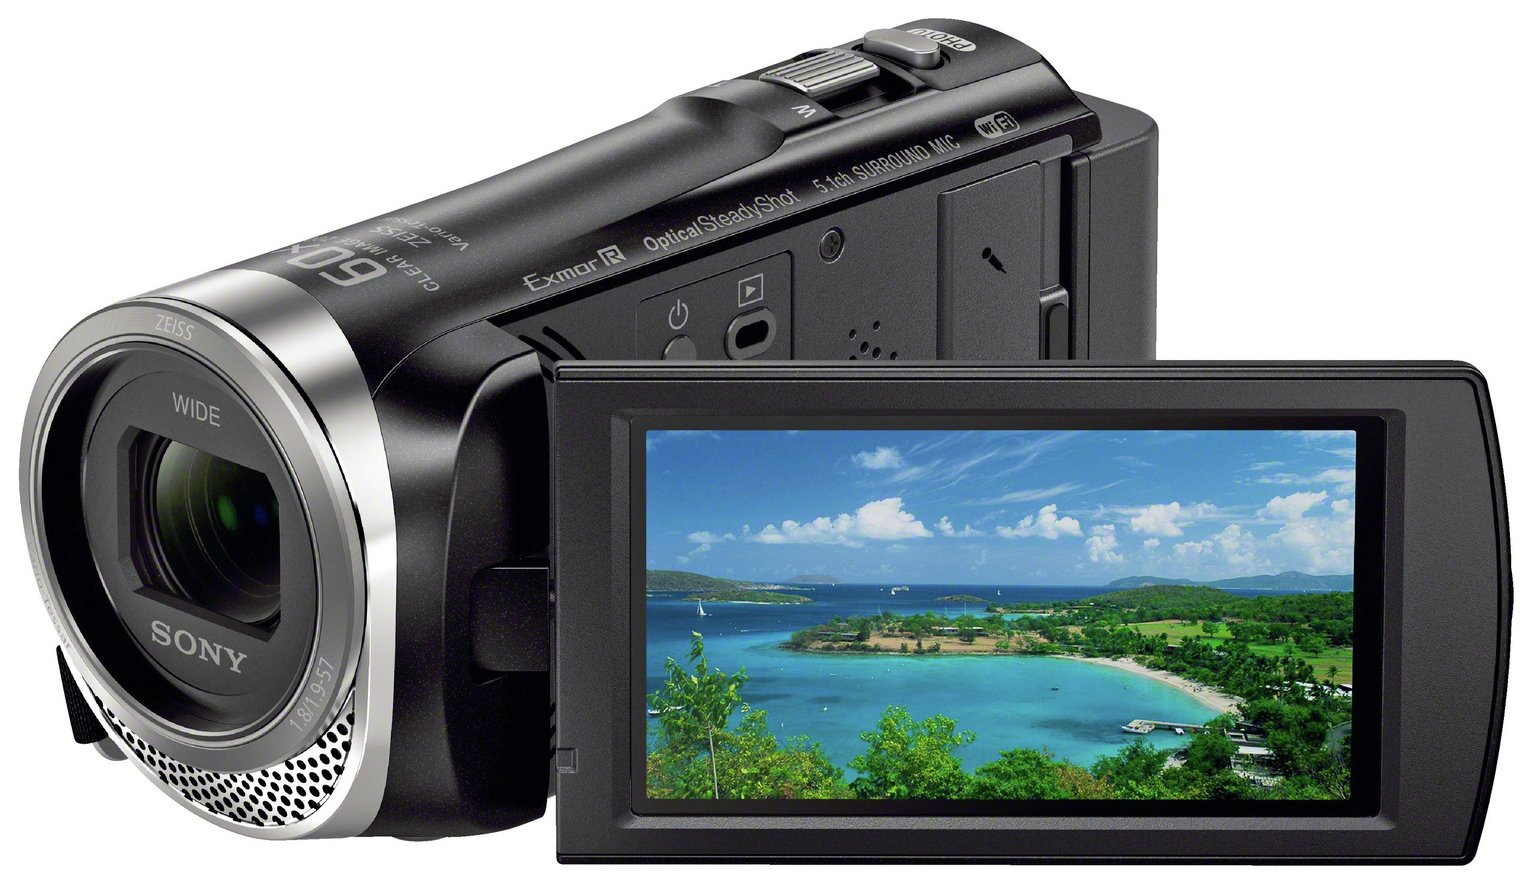 Sony - HDR-CX450 Camcorder - Black from Sony